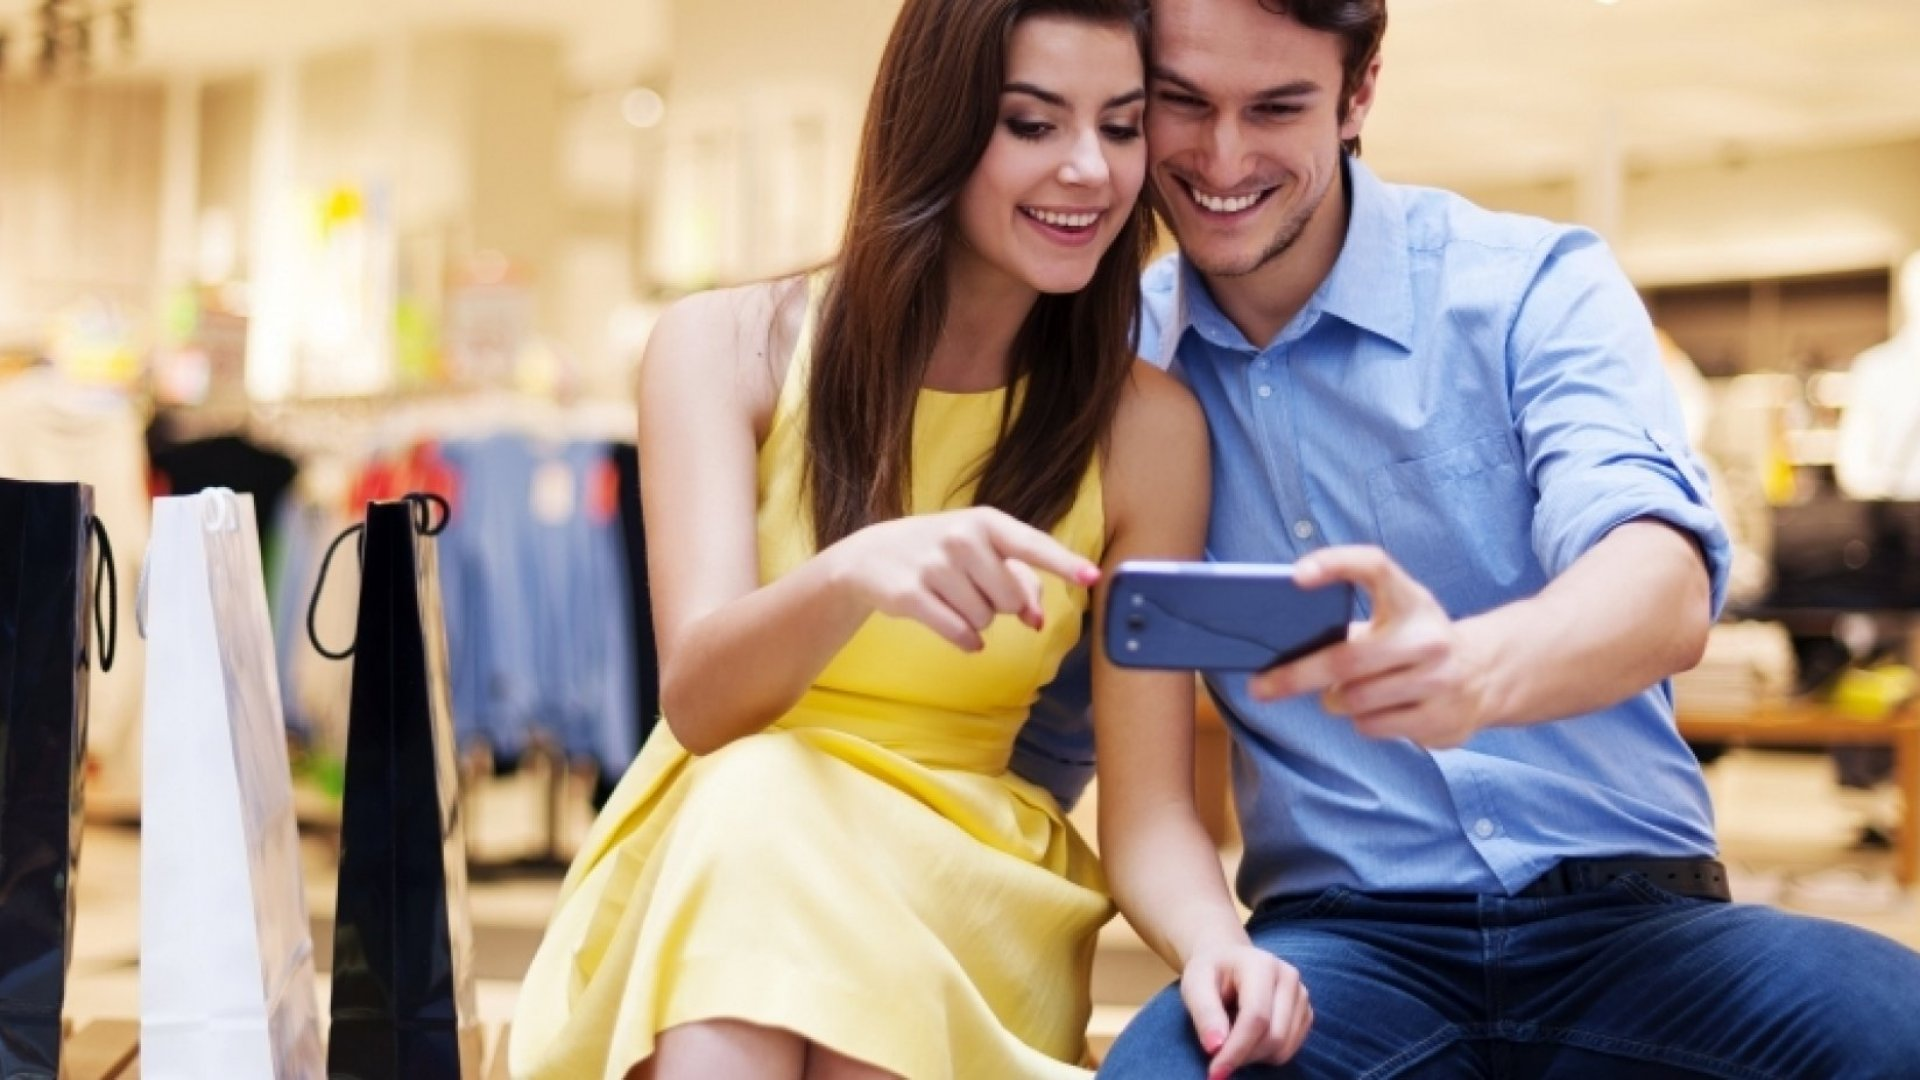 How Macy's CMO Uses Omni-Channel Marketing to Surprise & Delight Shoppers